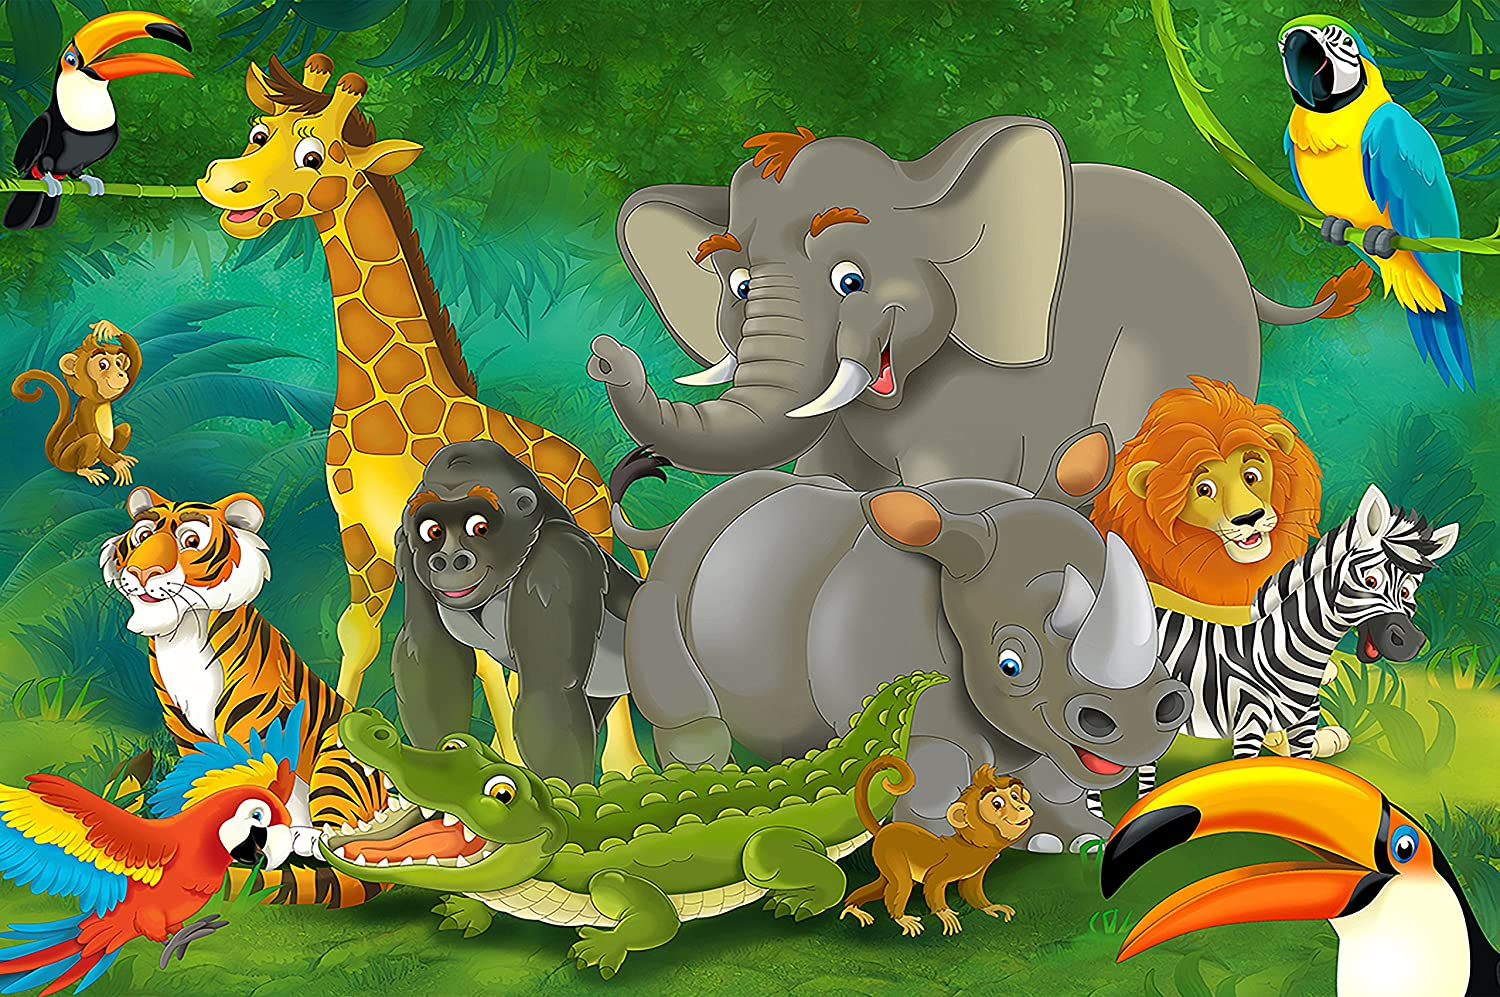 GREAT ART Papier Peint Photo de d/écoration motif Animaux de la Jungle pour Enfants par GREAT ART 336x238cm// 132.3x93.7 pouces Papier Peint 8 Unit/és plus colle incluse.